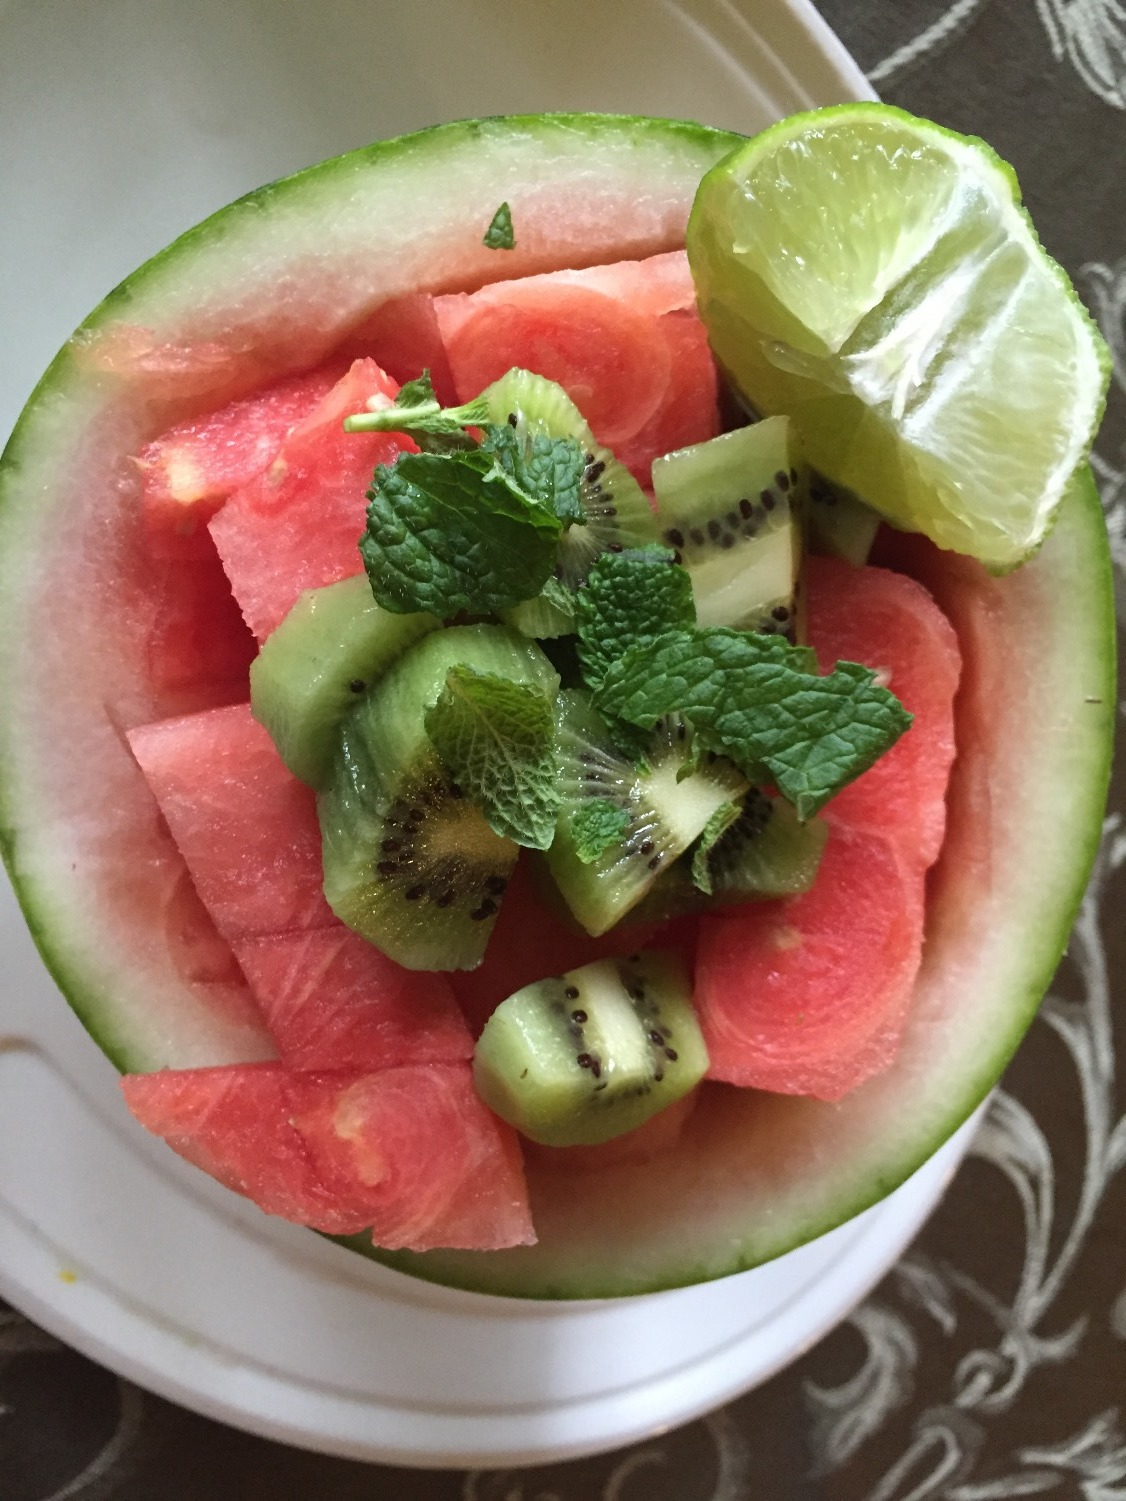 Watermelon with Kiwi, Lime Juice and Fresh Mint